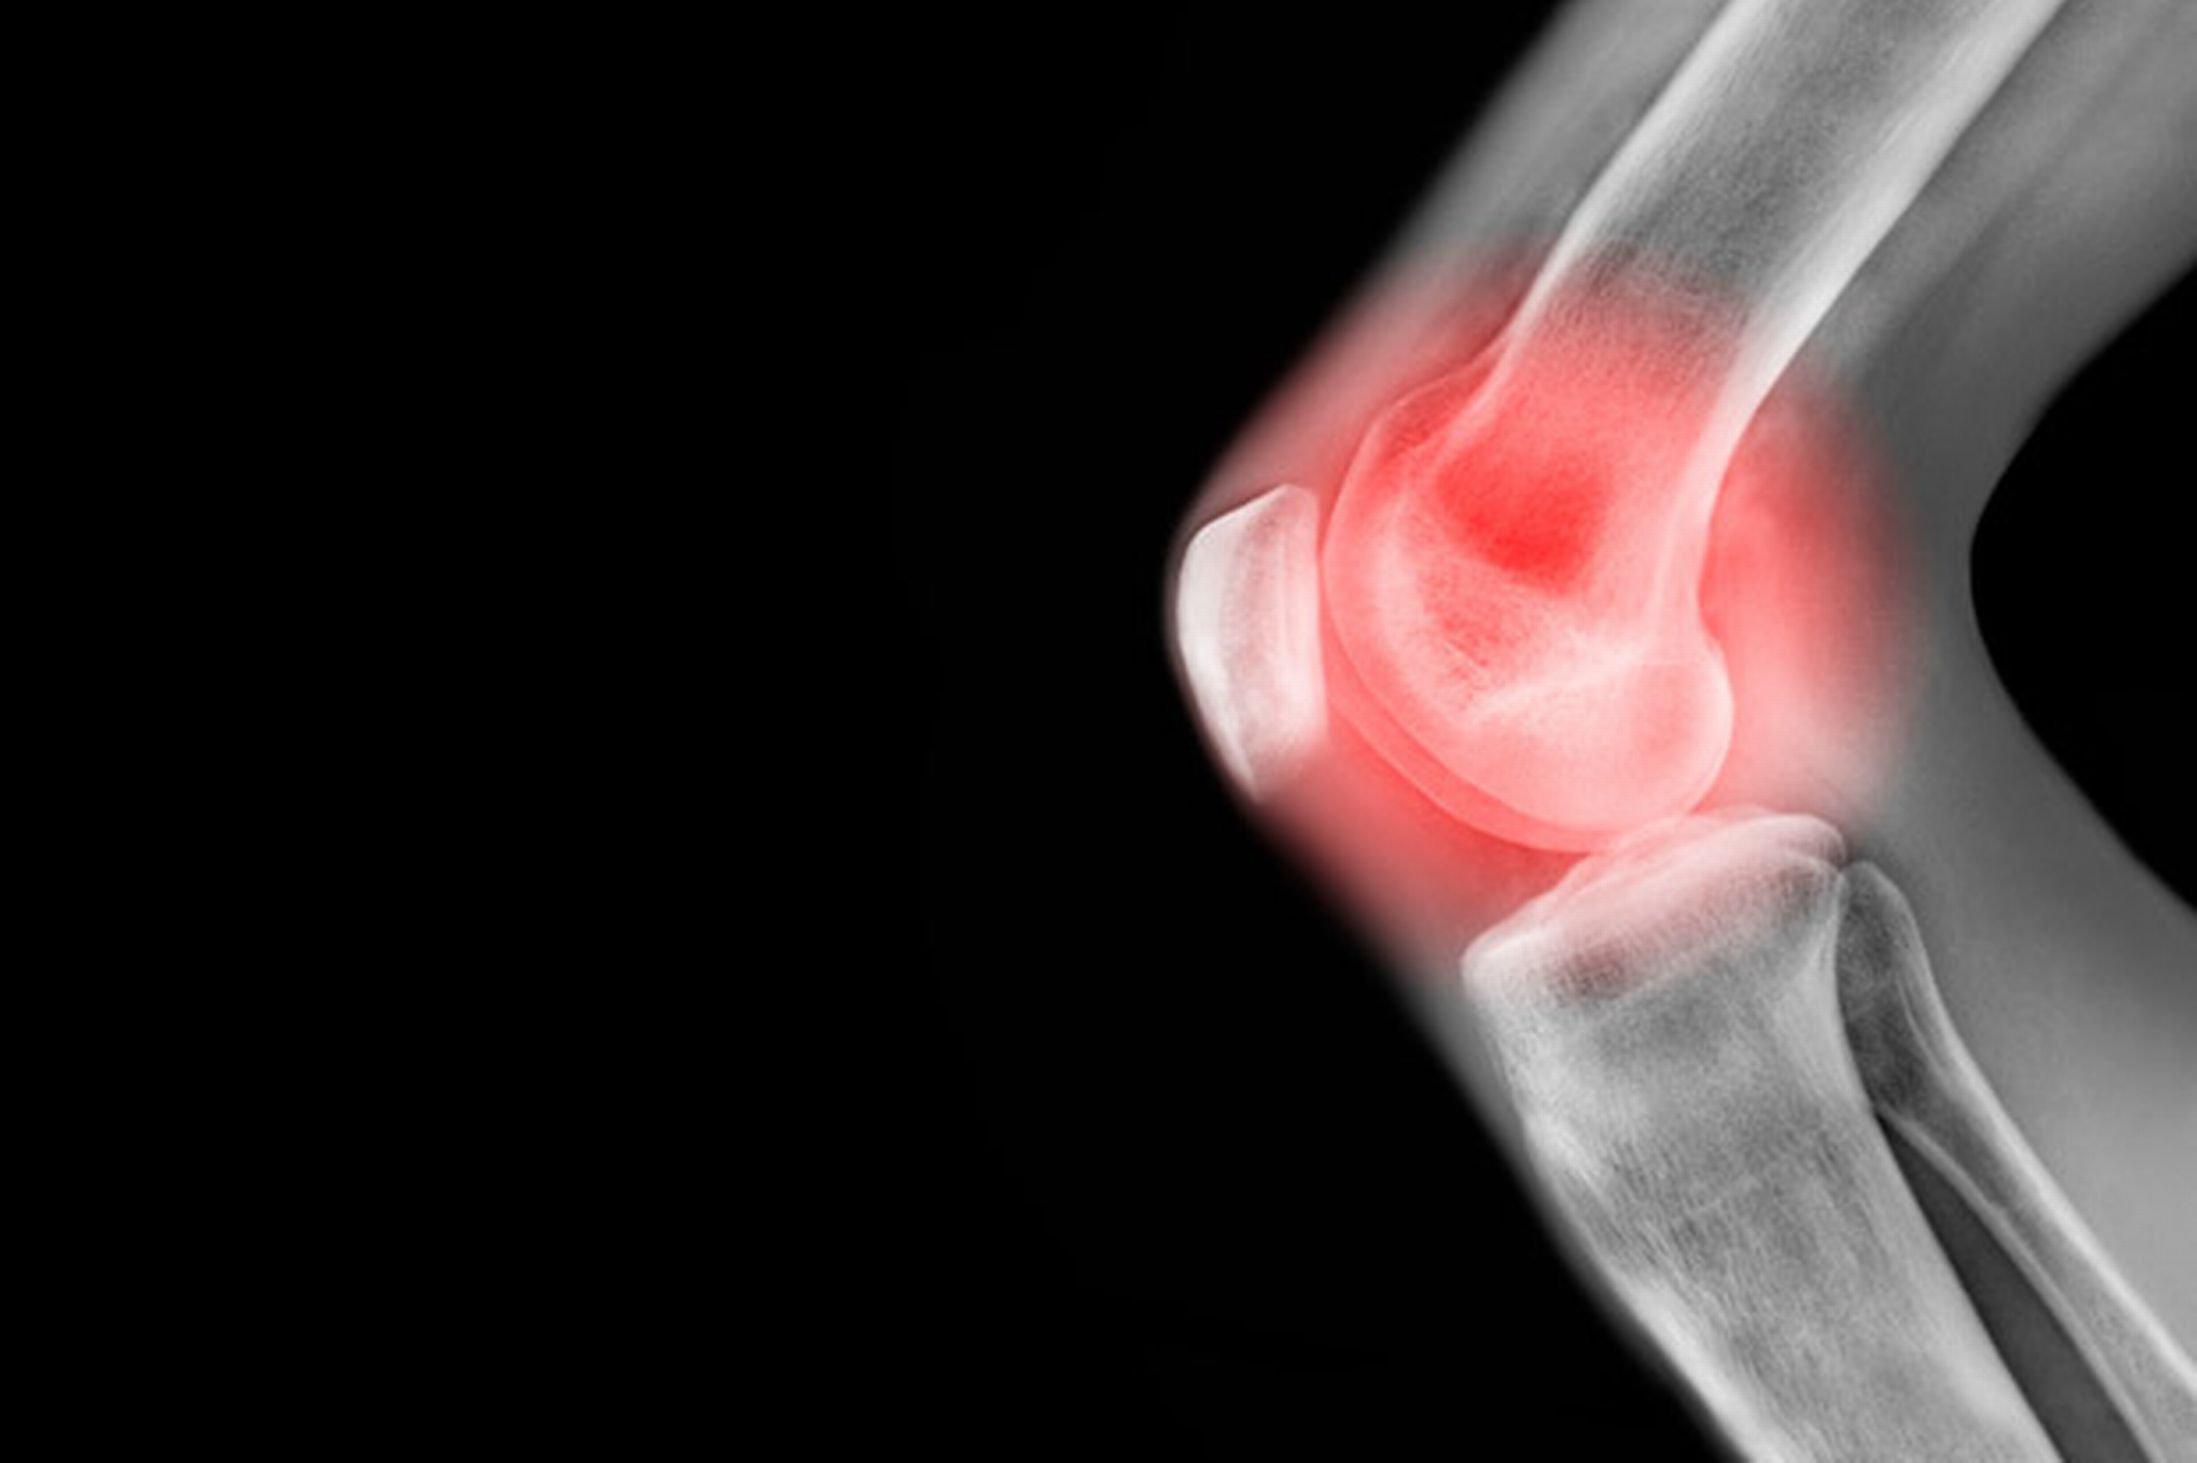 Living with Arthritis in the Knee